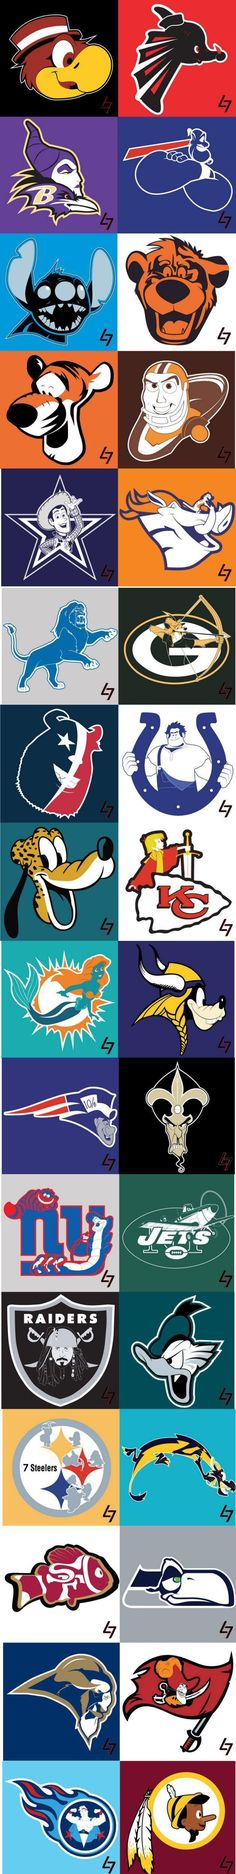 NFL logos with Disney characters. This literally combines my 2 favorite things. Football and Disney Nfl Memes, Football Memes, Sports Memes, Nfl Football, American Football, Chiefs Memes, Football Parties, Sports Logos, Funny Sports